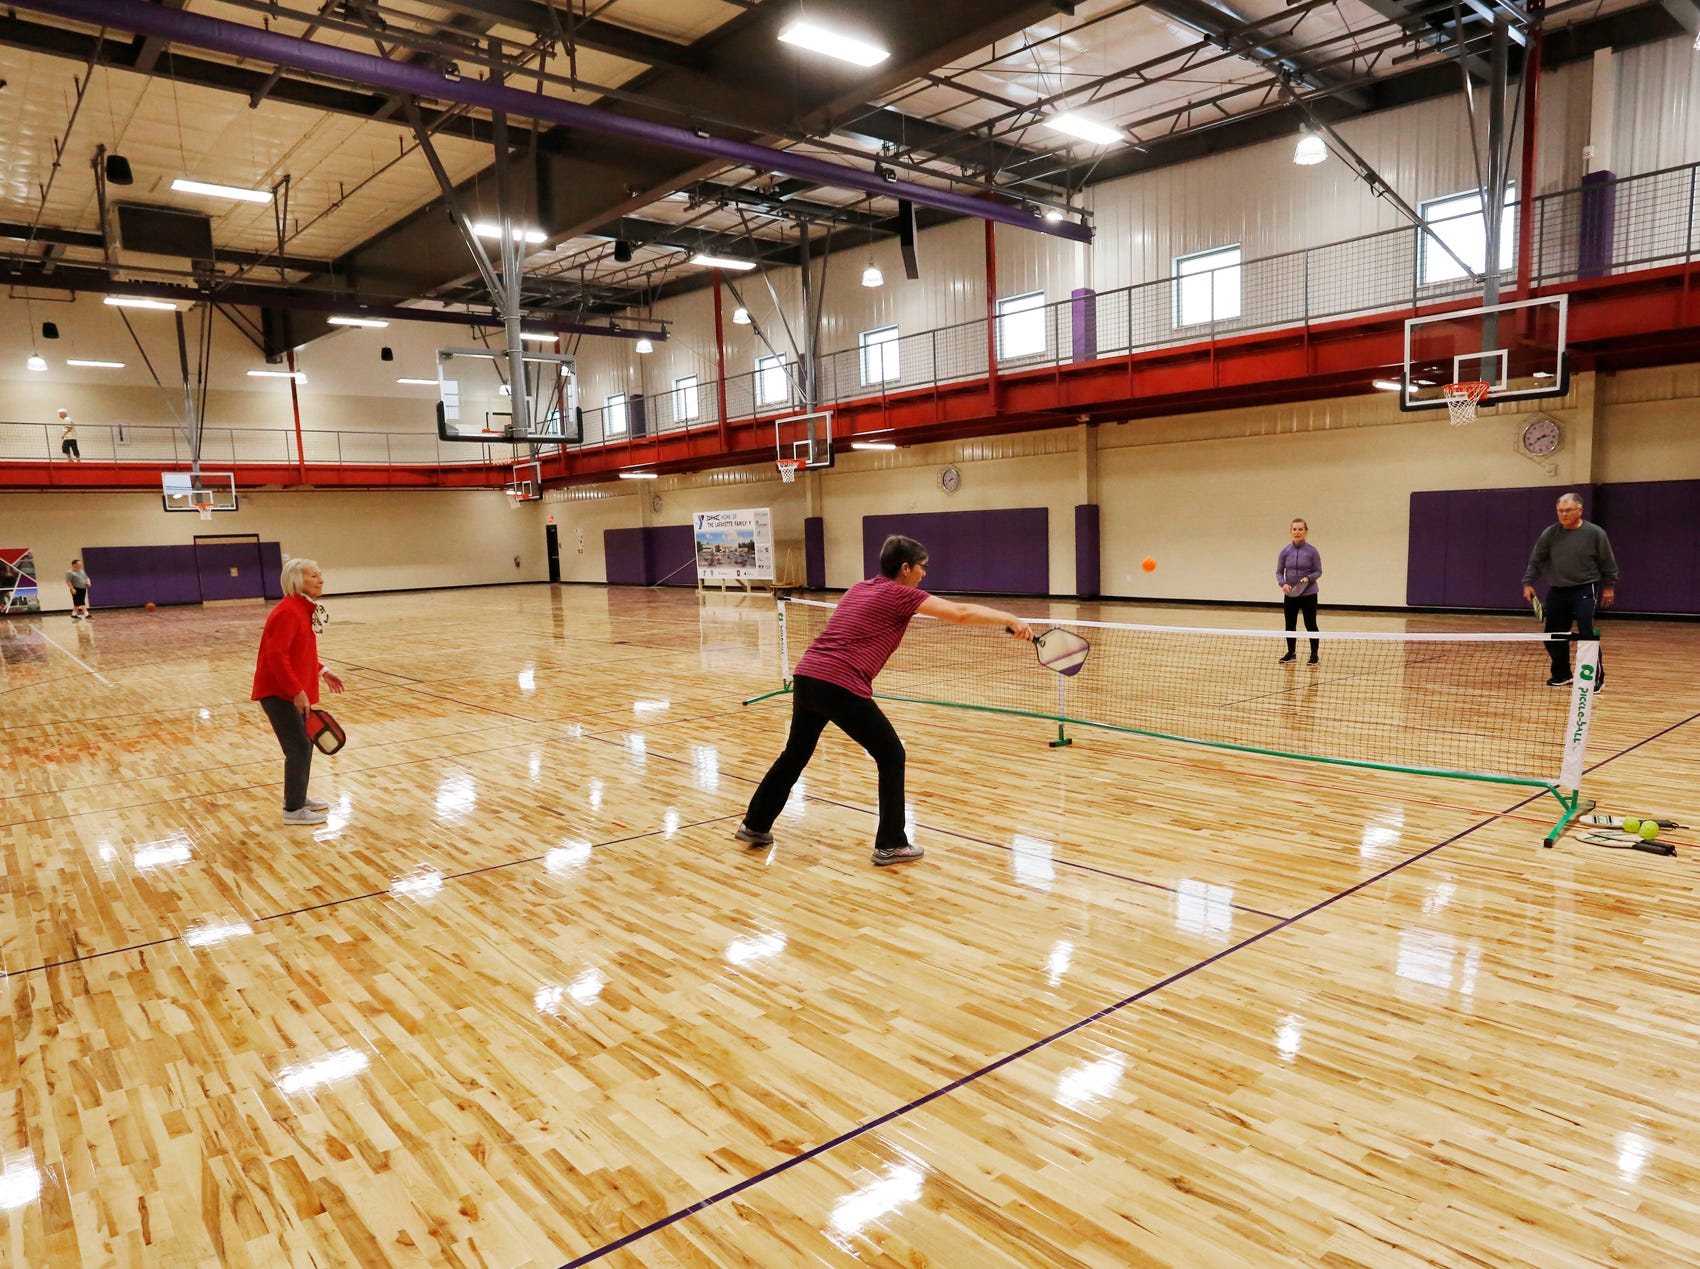 Members play pickle ball inside the gymnasium Thursday, December 6, 2018, at the new Lafayette Family YMCA, 3001 S. Creasy Lane in Lafayette. The facility celebrated its grand opening Thursday.